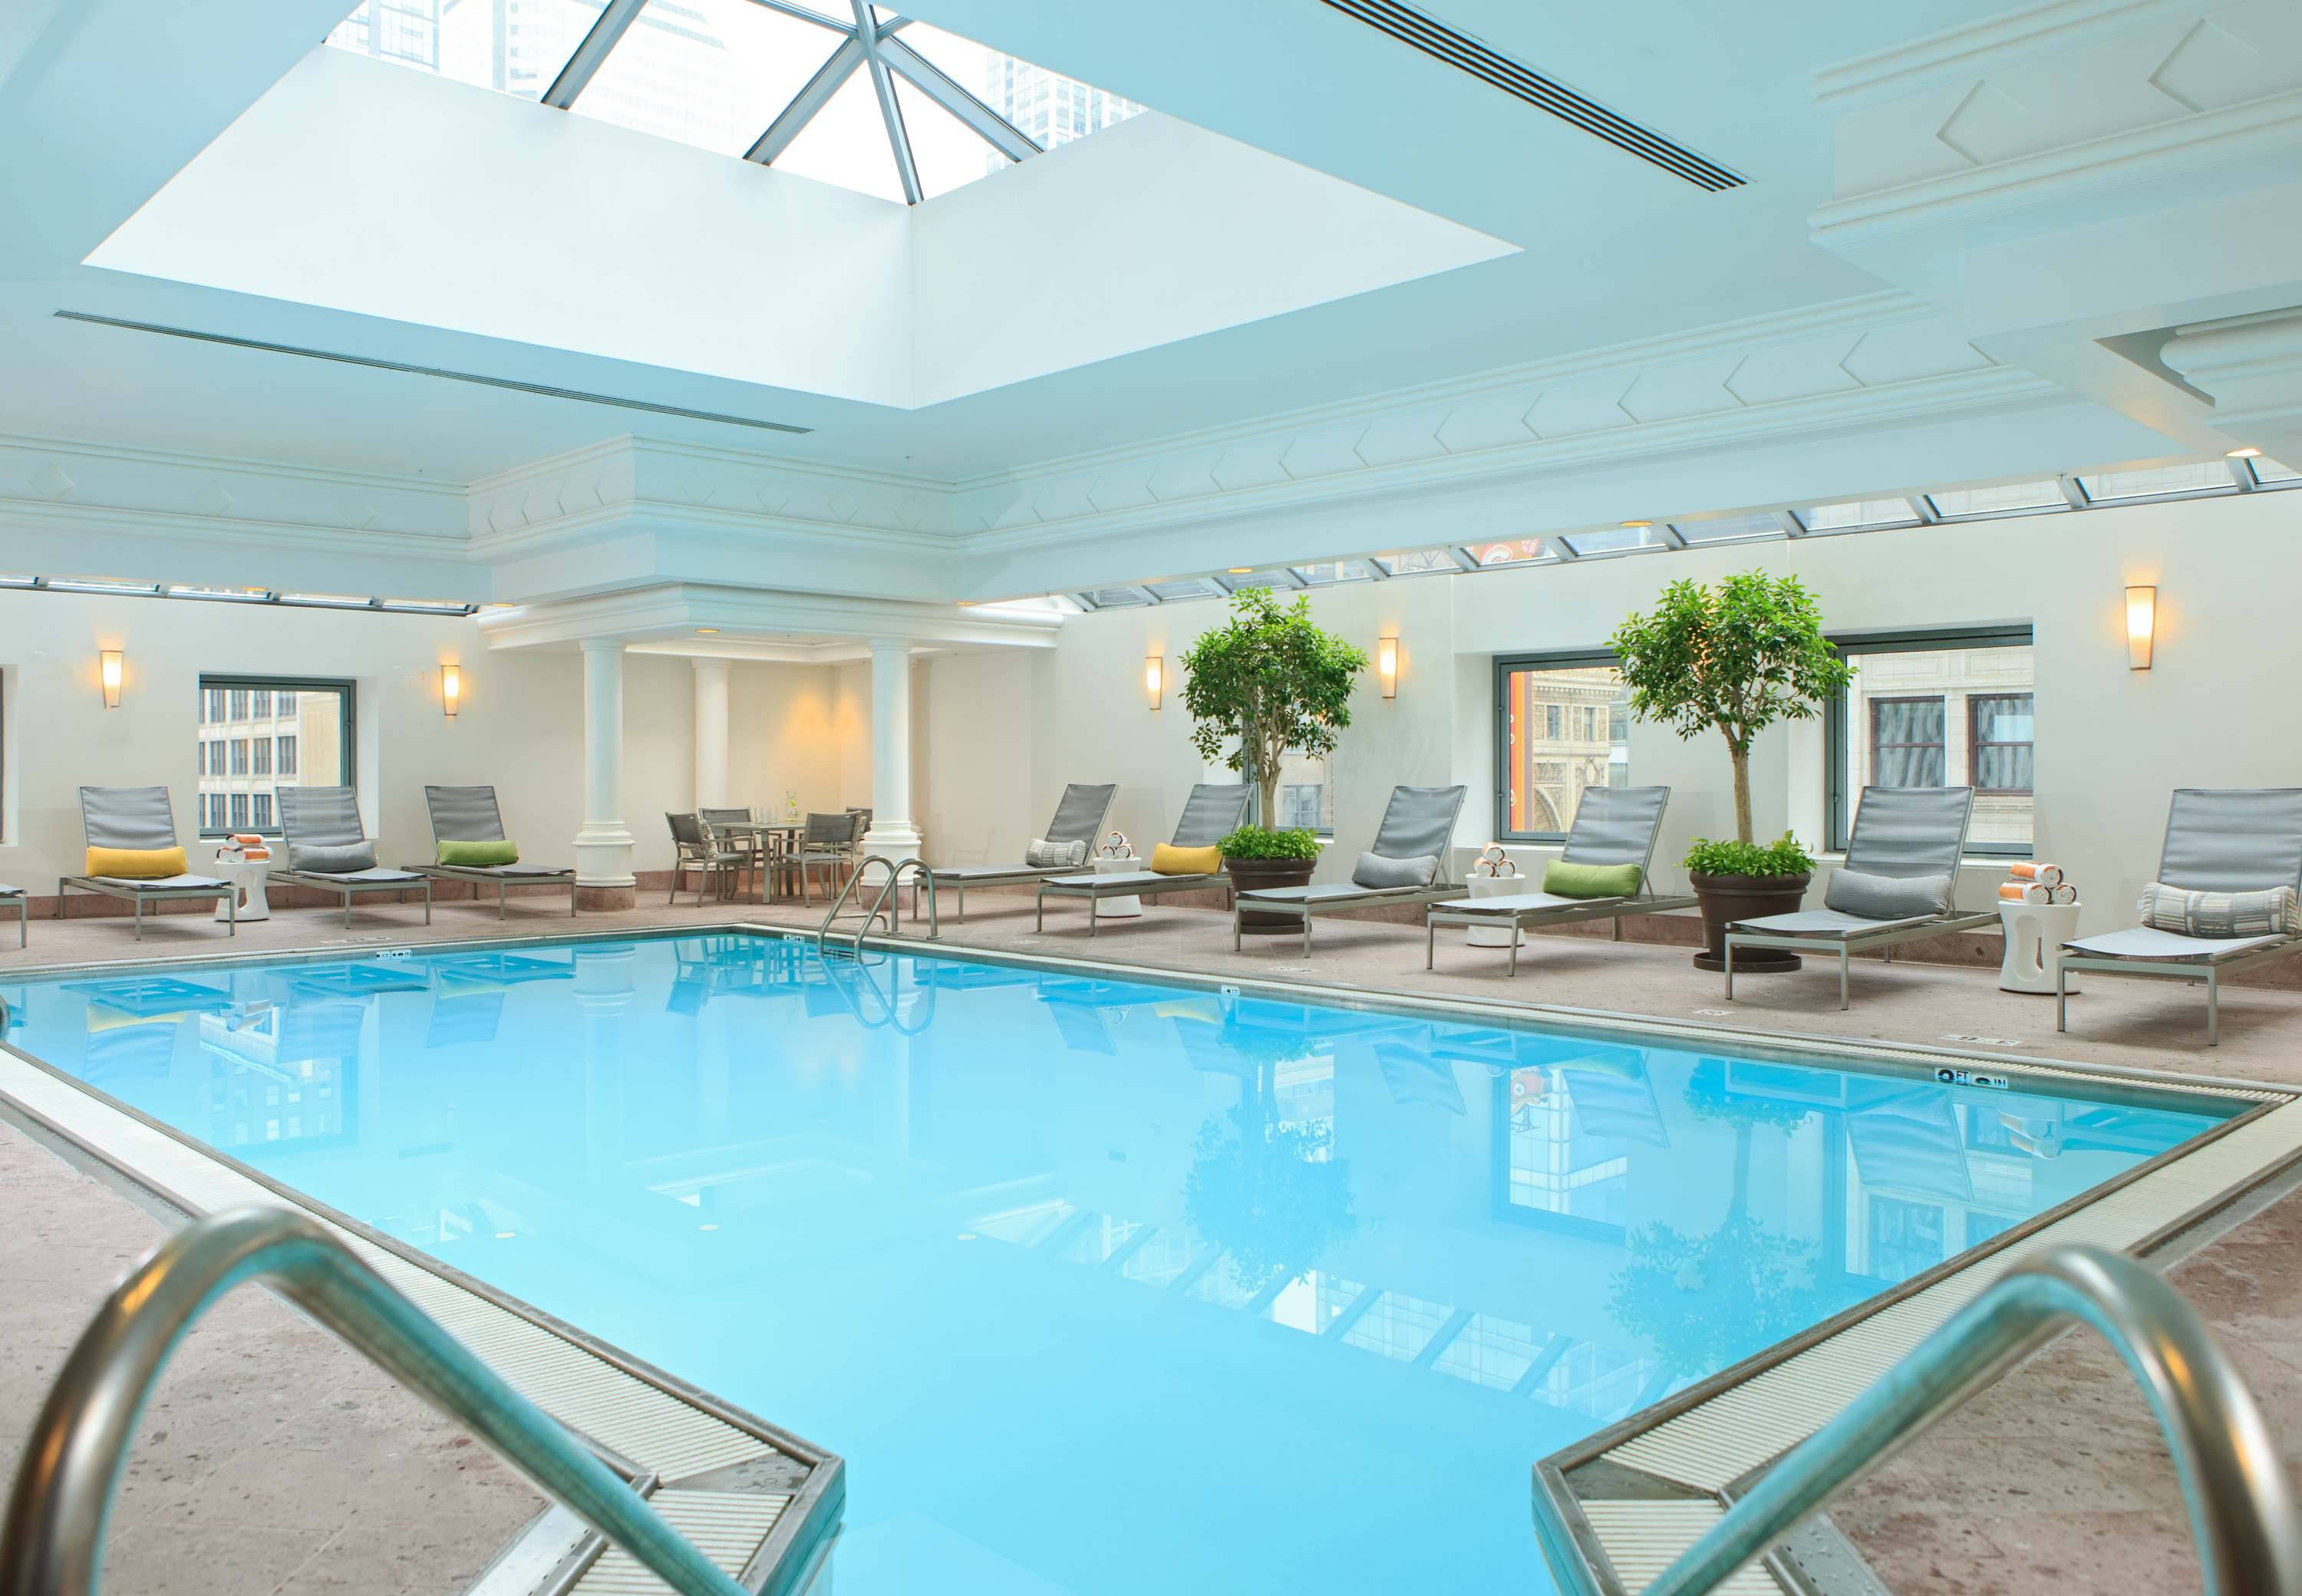 Chicago Hotels With Indoor Pools - Rouydadnews.info